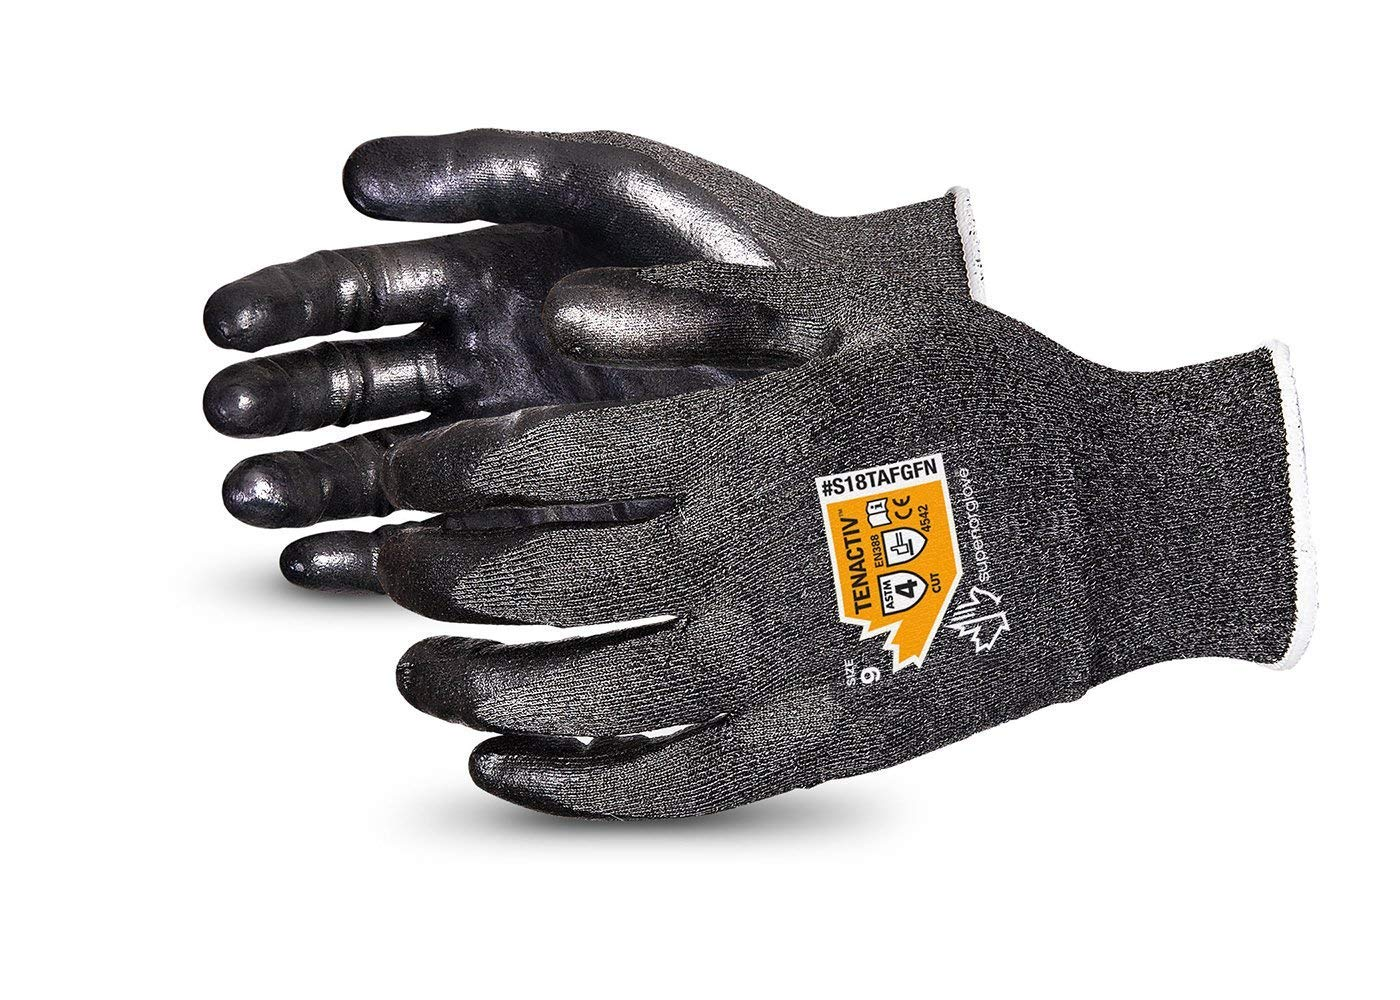 #S18TAFGFN AWARD WINNER. Superior Glove® TenActiv™ Composite Cut-Resistant Foam Nitrile Coated Work Gloves